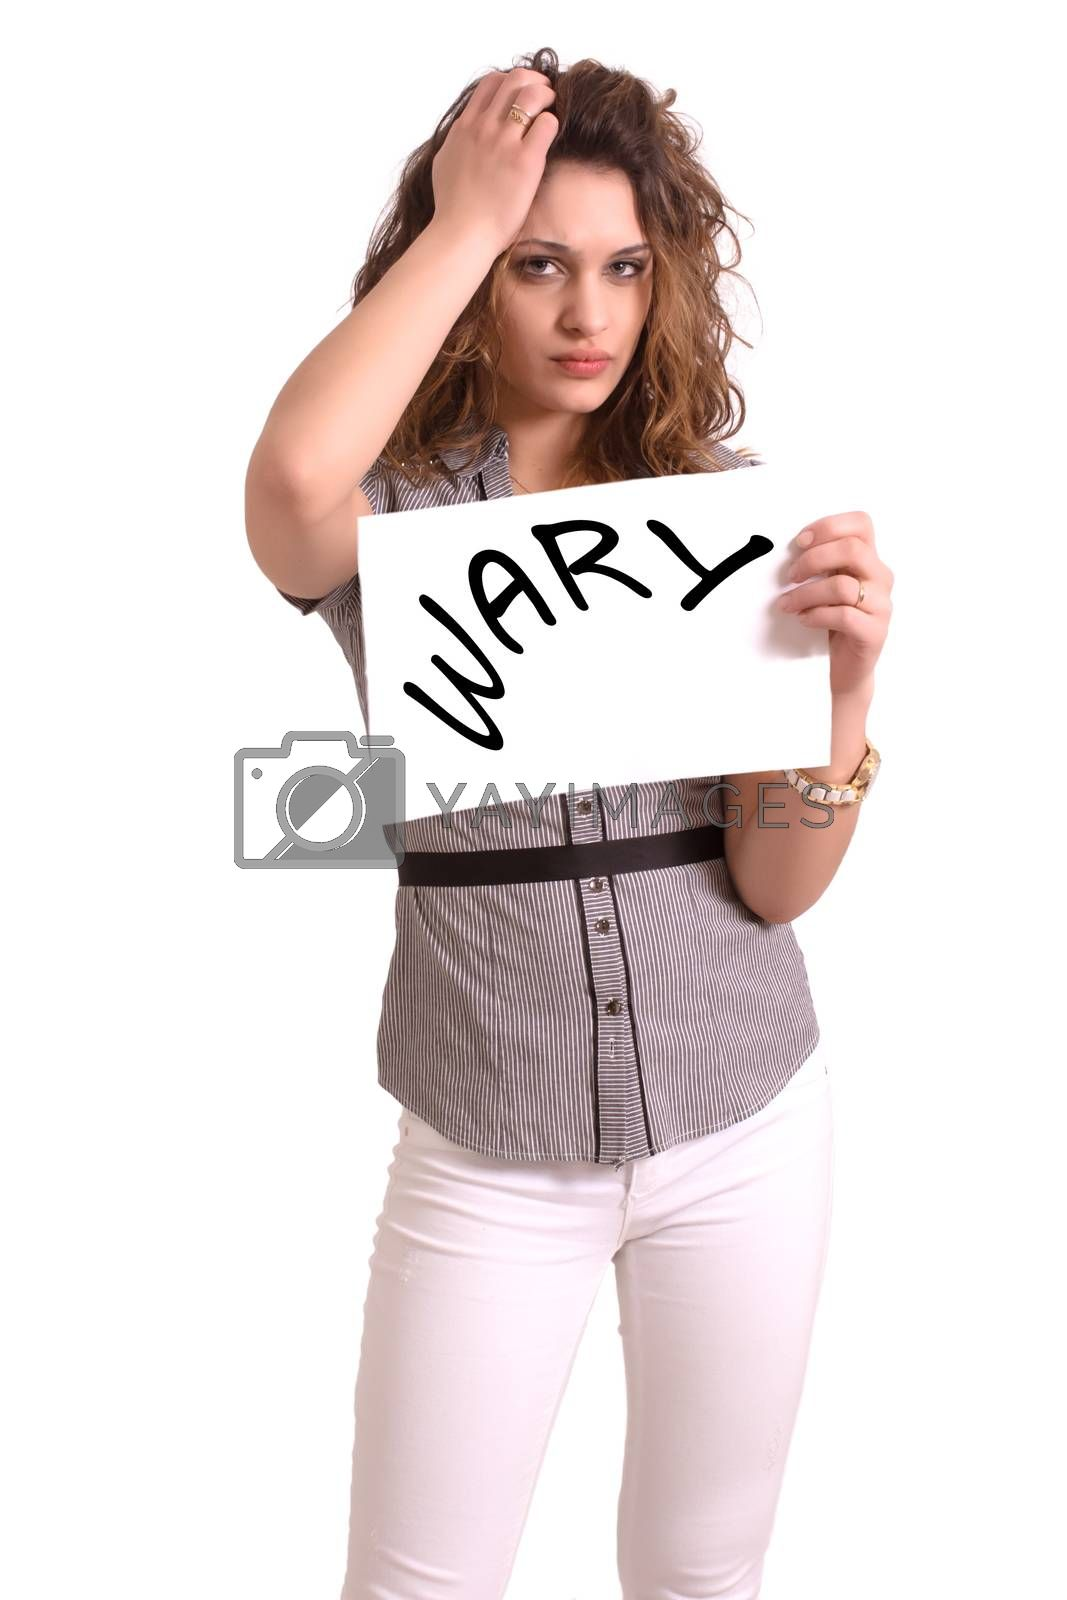 Royalty free image of uncomfortable woman holding paper with Wary text by vepar5